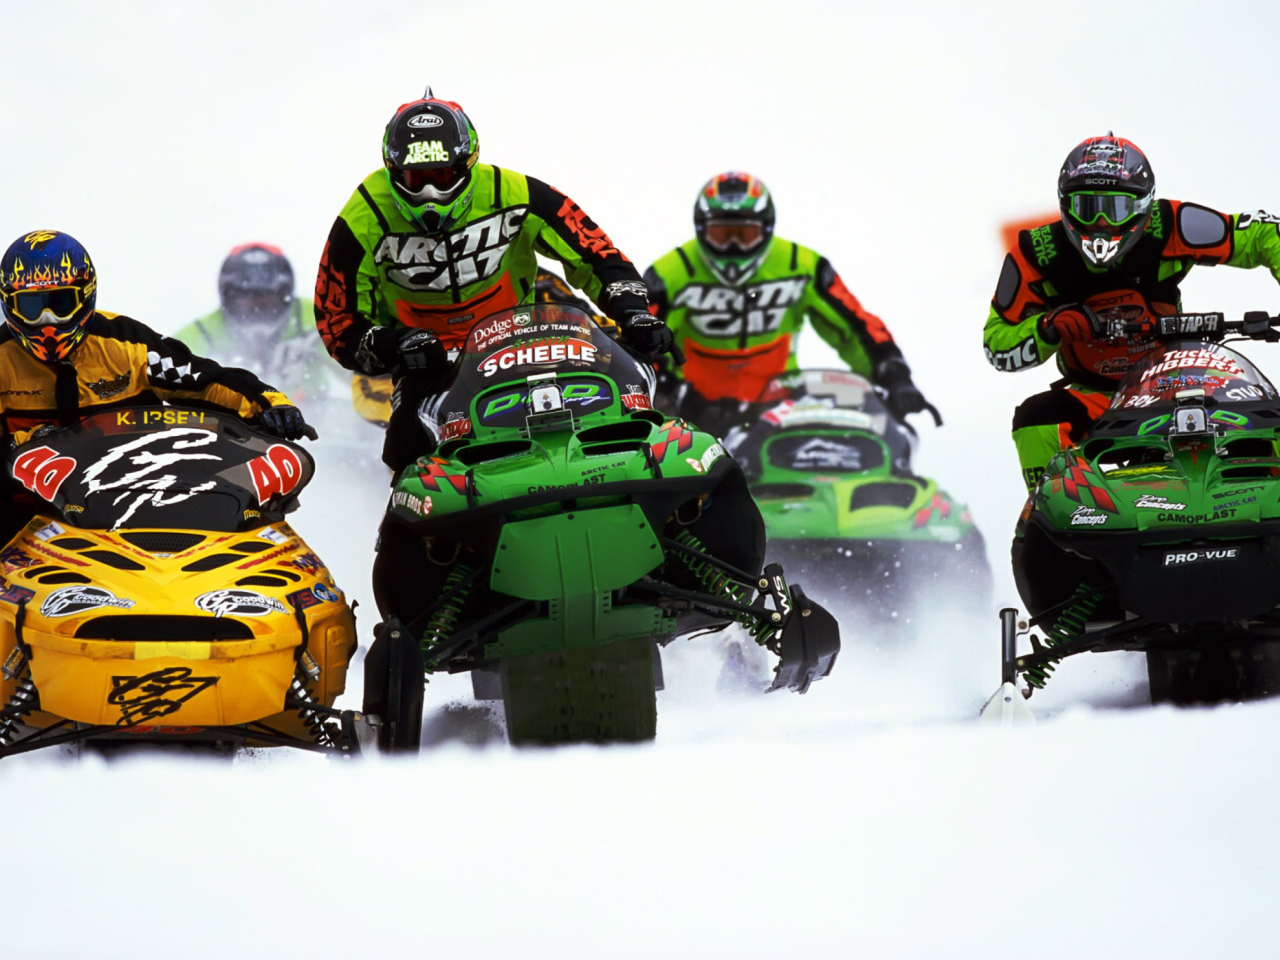 Snowmobile wallpaper 1280x960